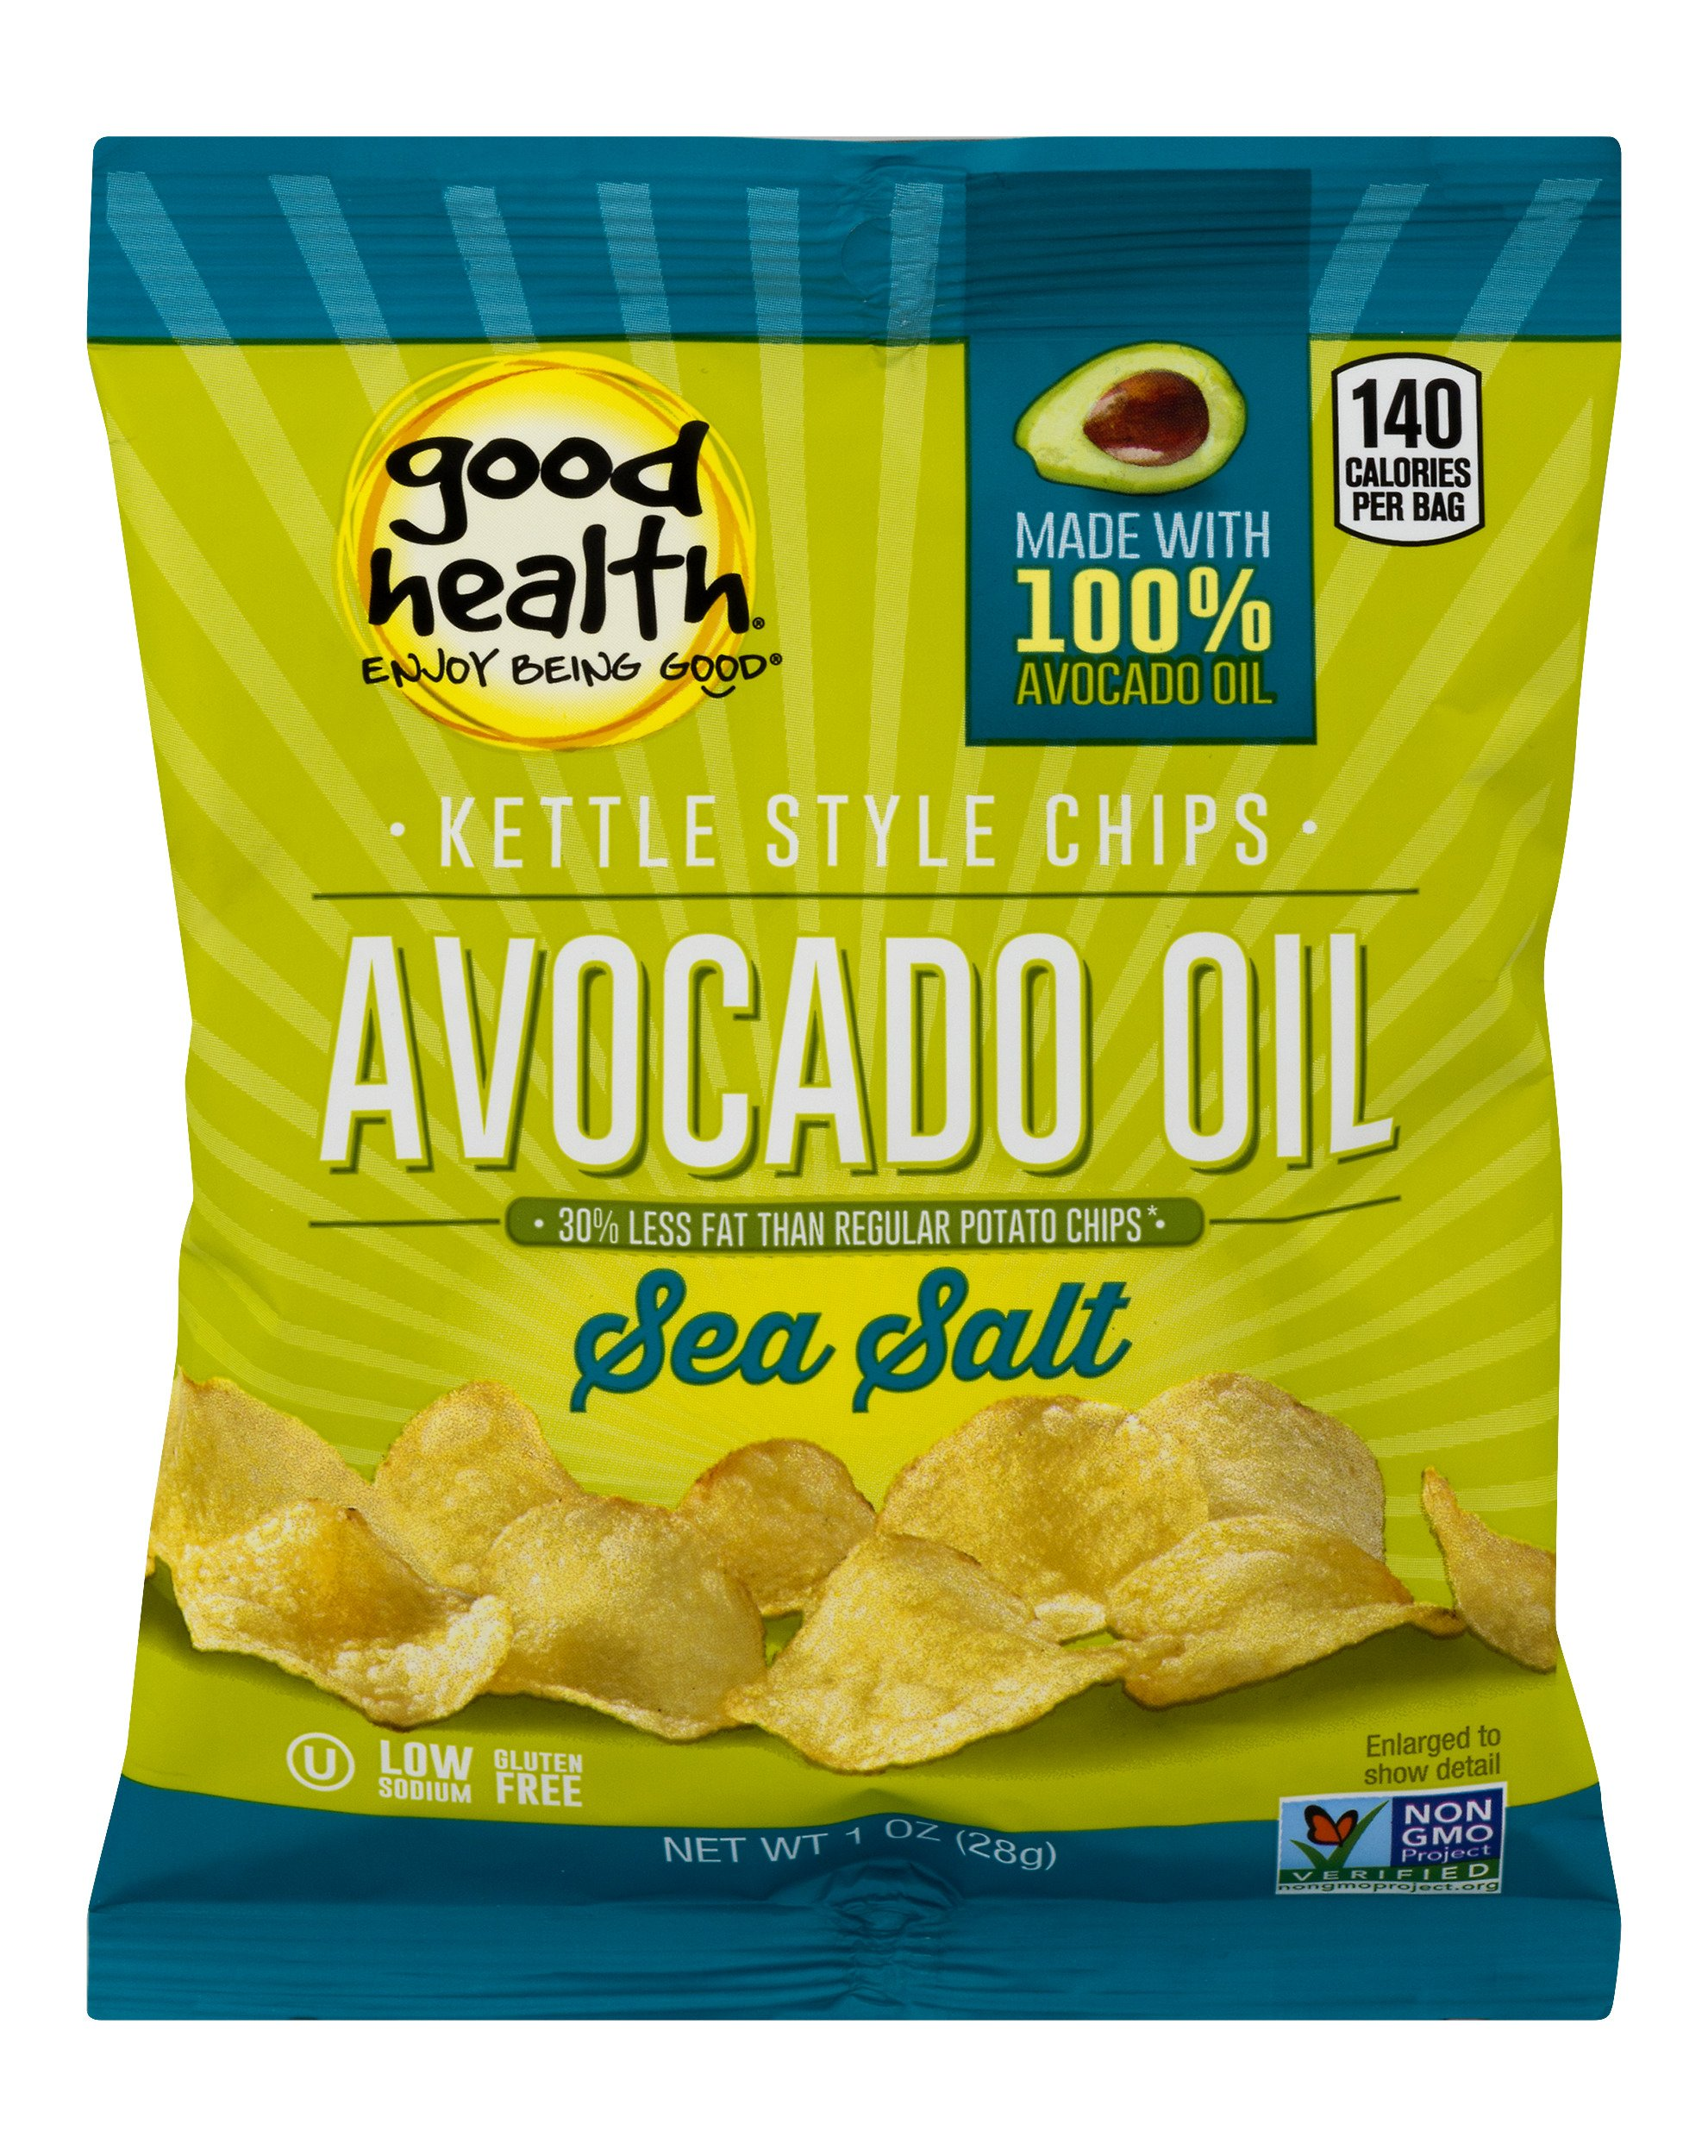 Good Health Kettle Style Potato Chips, Avocado Oil, Sea Salt, 1 oz. Bag, 30 Pack - Gluten Free, Crunchy Chips Cooked in 100% Avocado Oil, Great for Lunches or Snacking on the Go by Good Health Natural